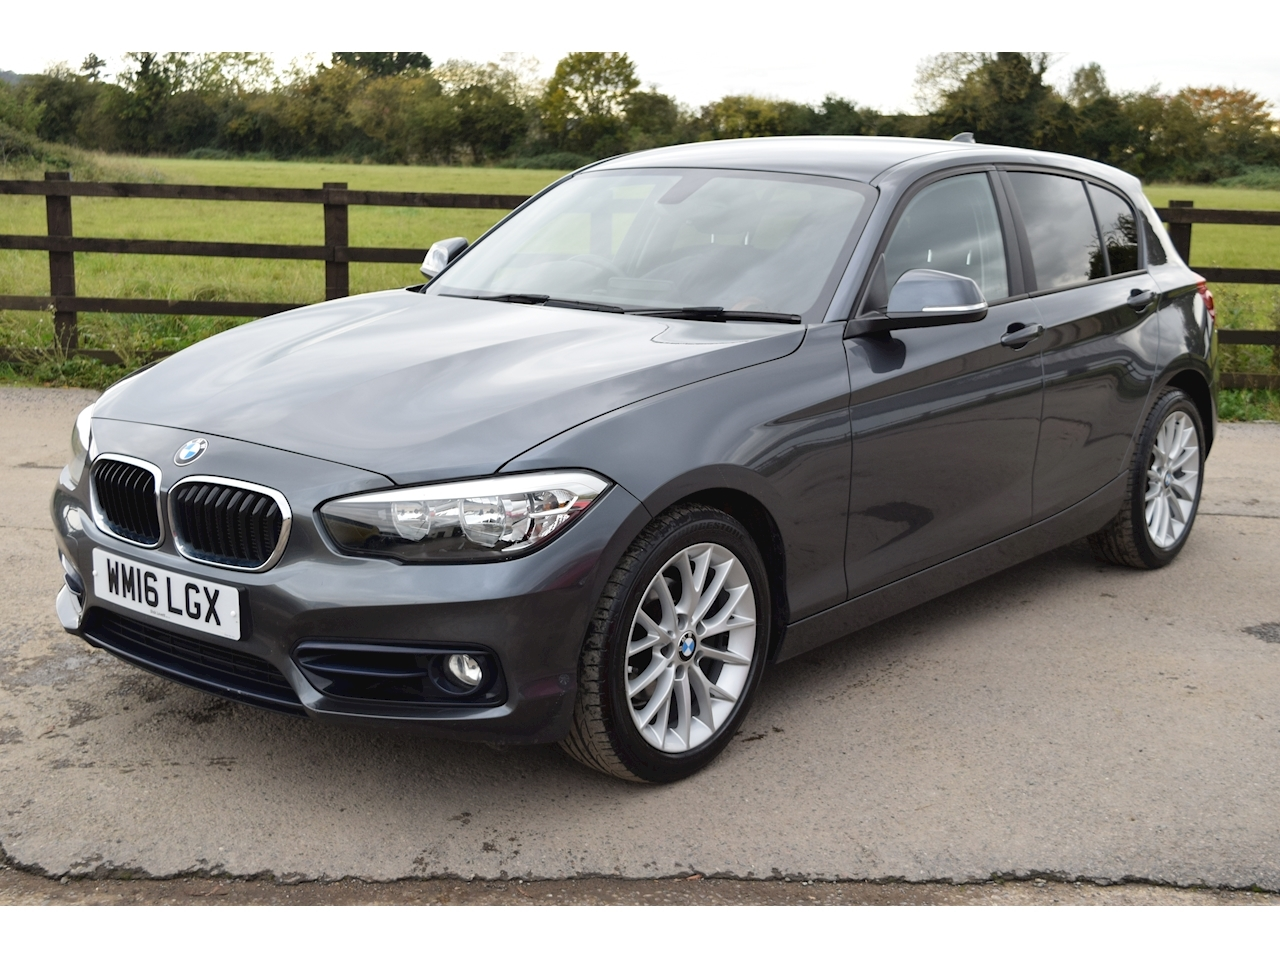 BMW 1 Series 118d Sport 5-Door 5 Door Sports Hatch 2.0 Manual Diesel